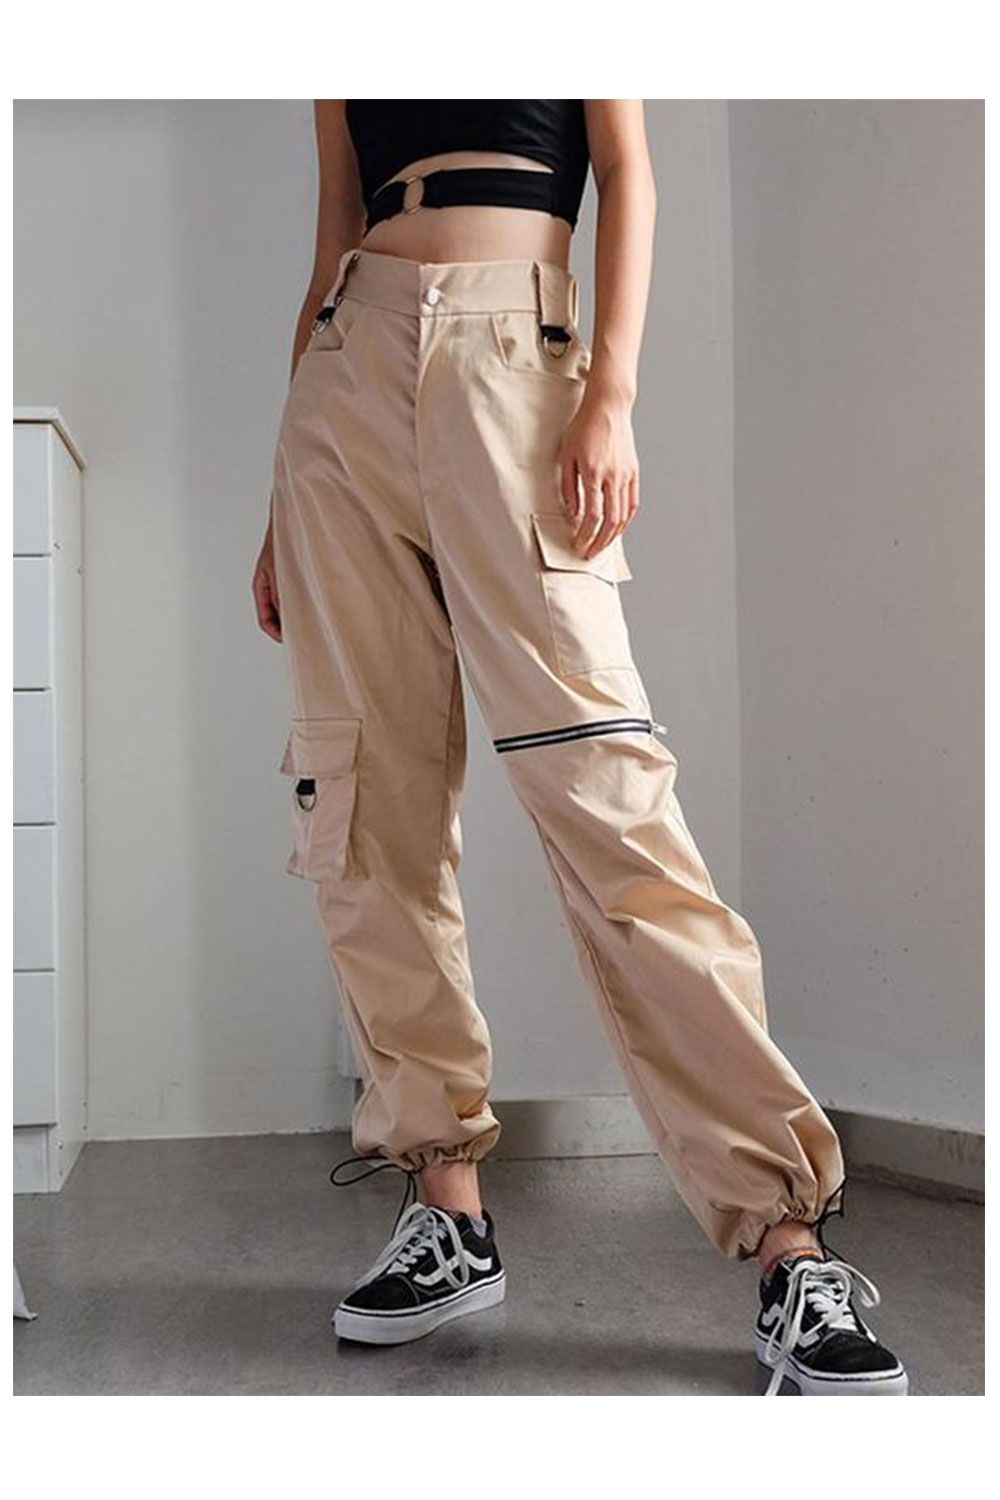 a7e045cf5df2 High Waist Long Trousers Casual Loose Solid Cool Streetwear Cargo ...